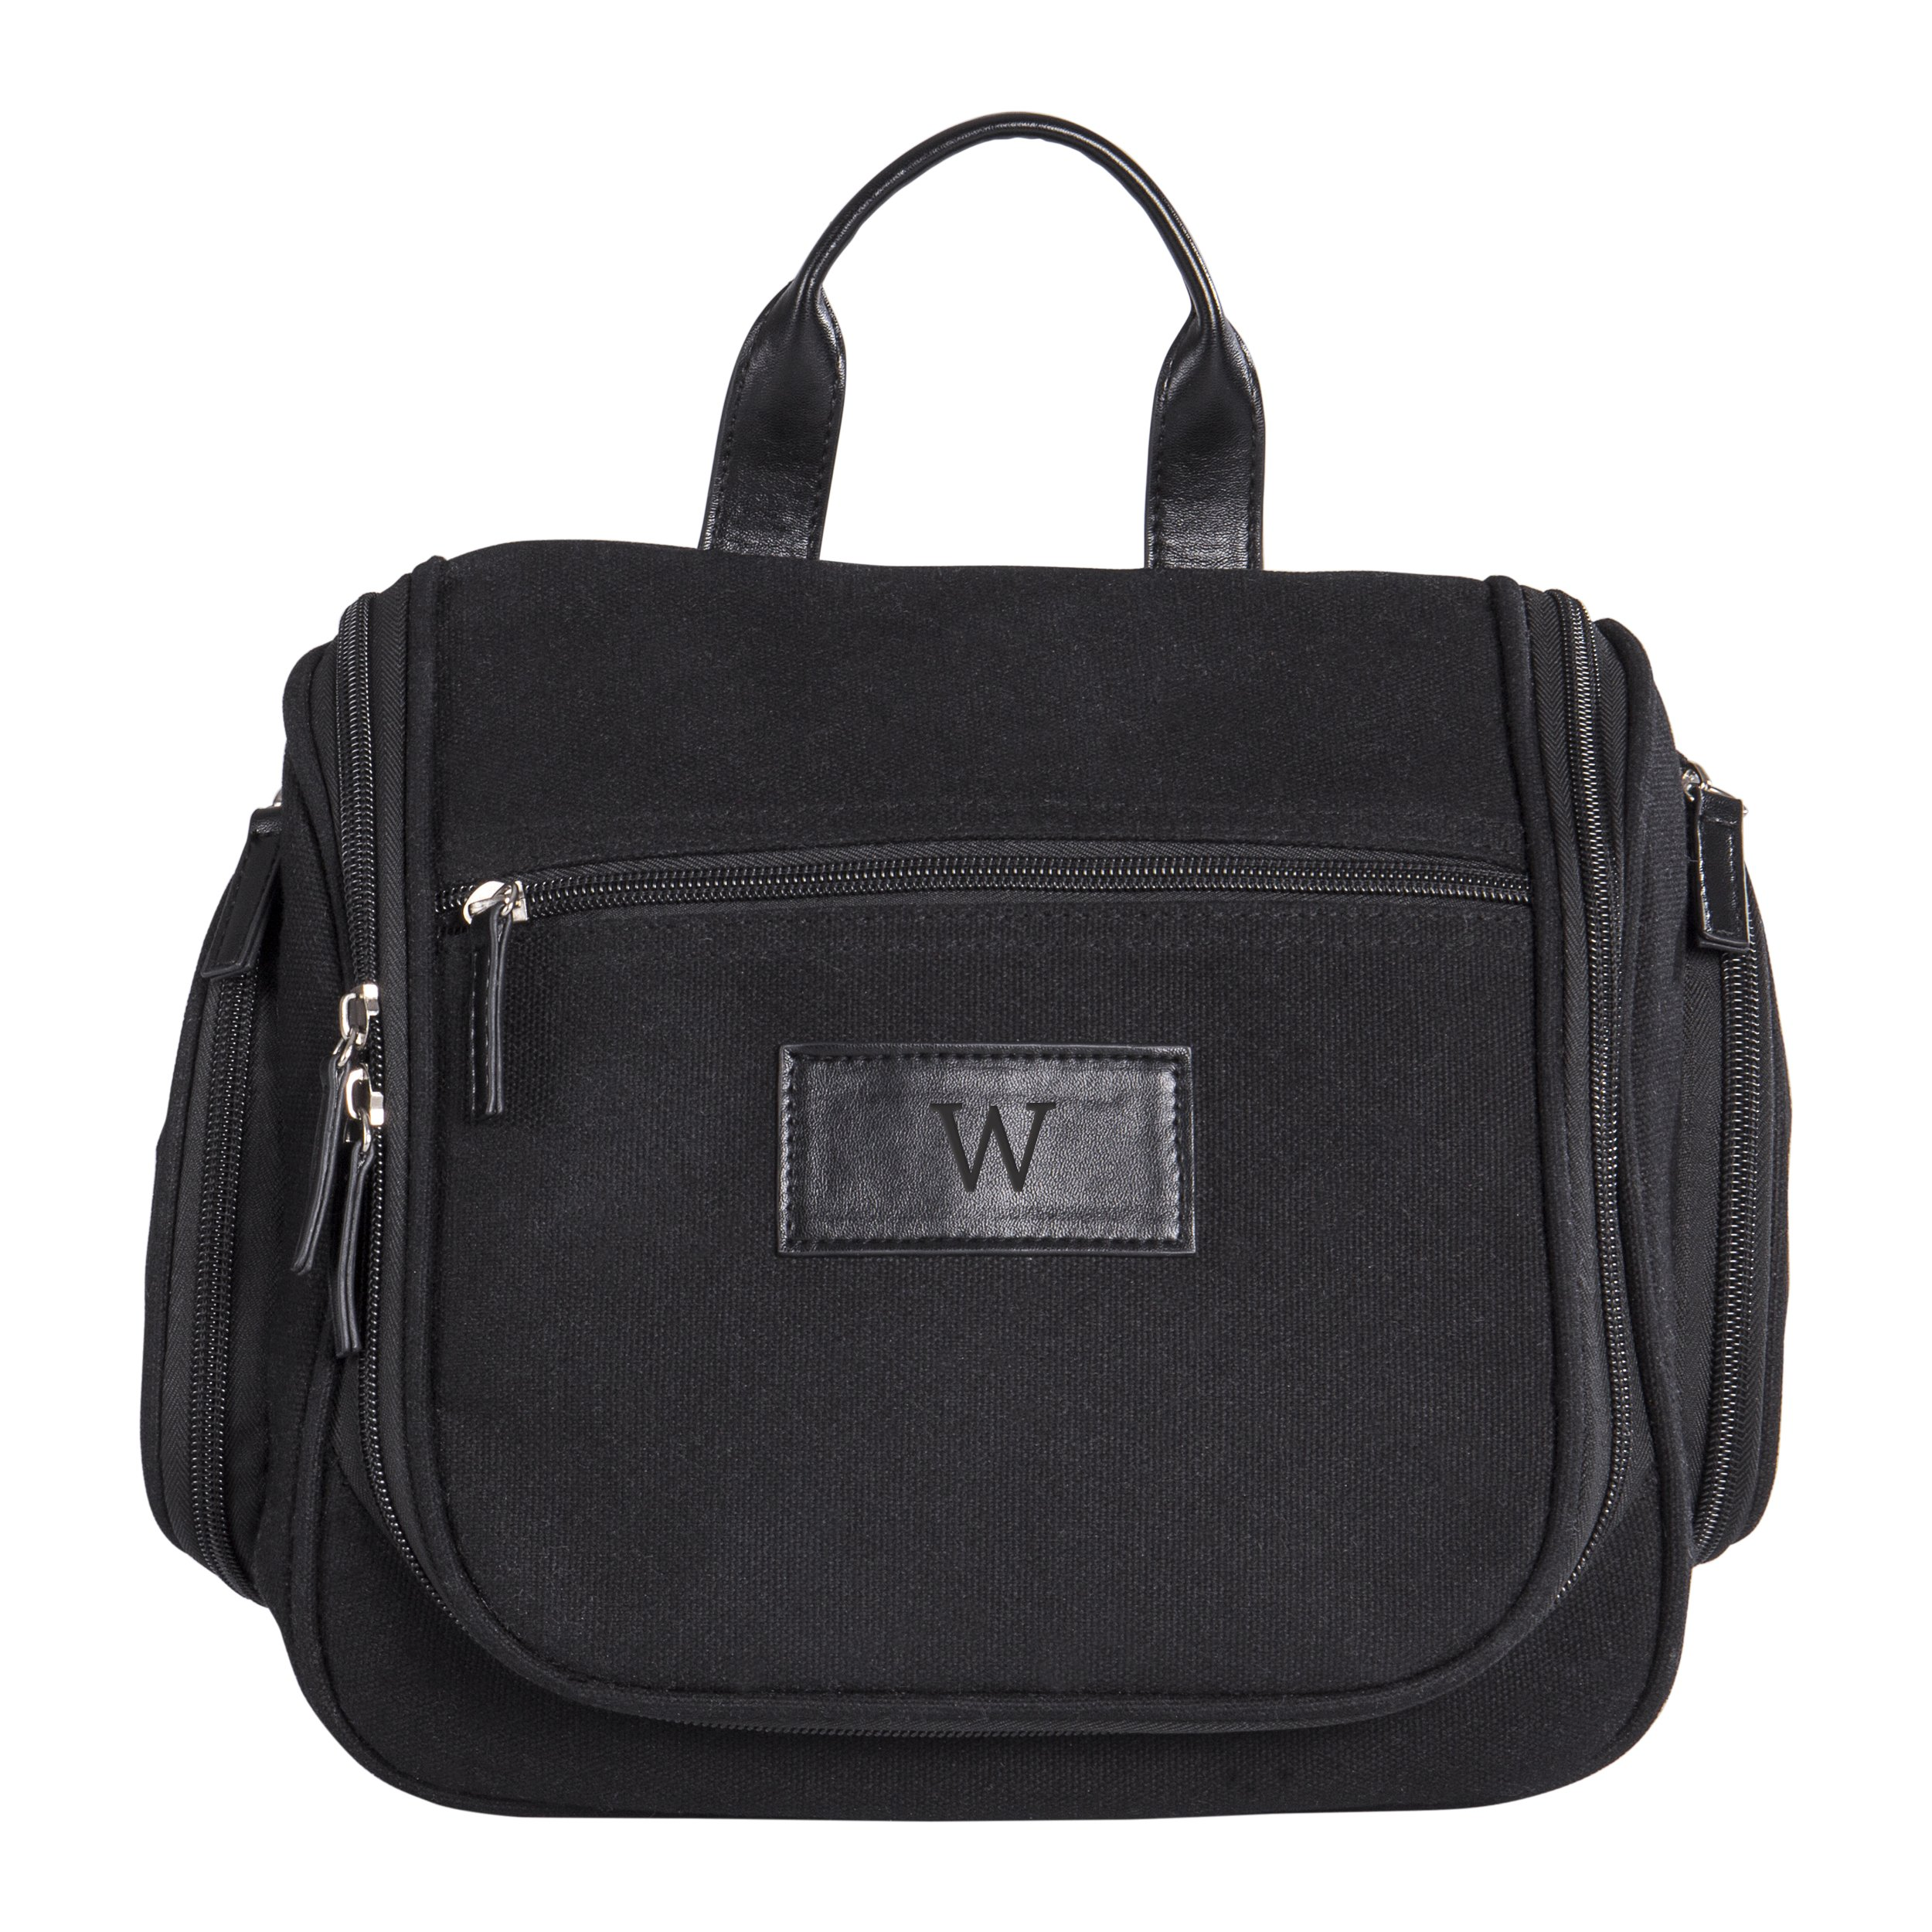 Cathy's Concepts Personalized Men's Waxed Canvas and Leather Hanging Toiletry Bag